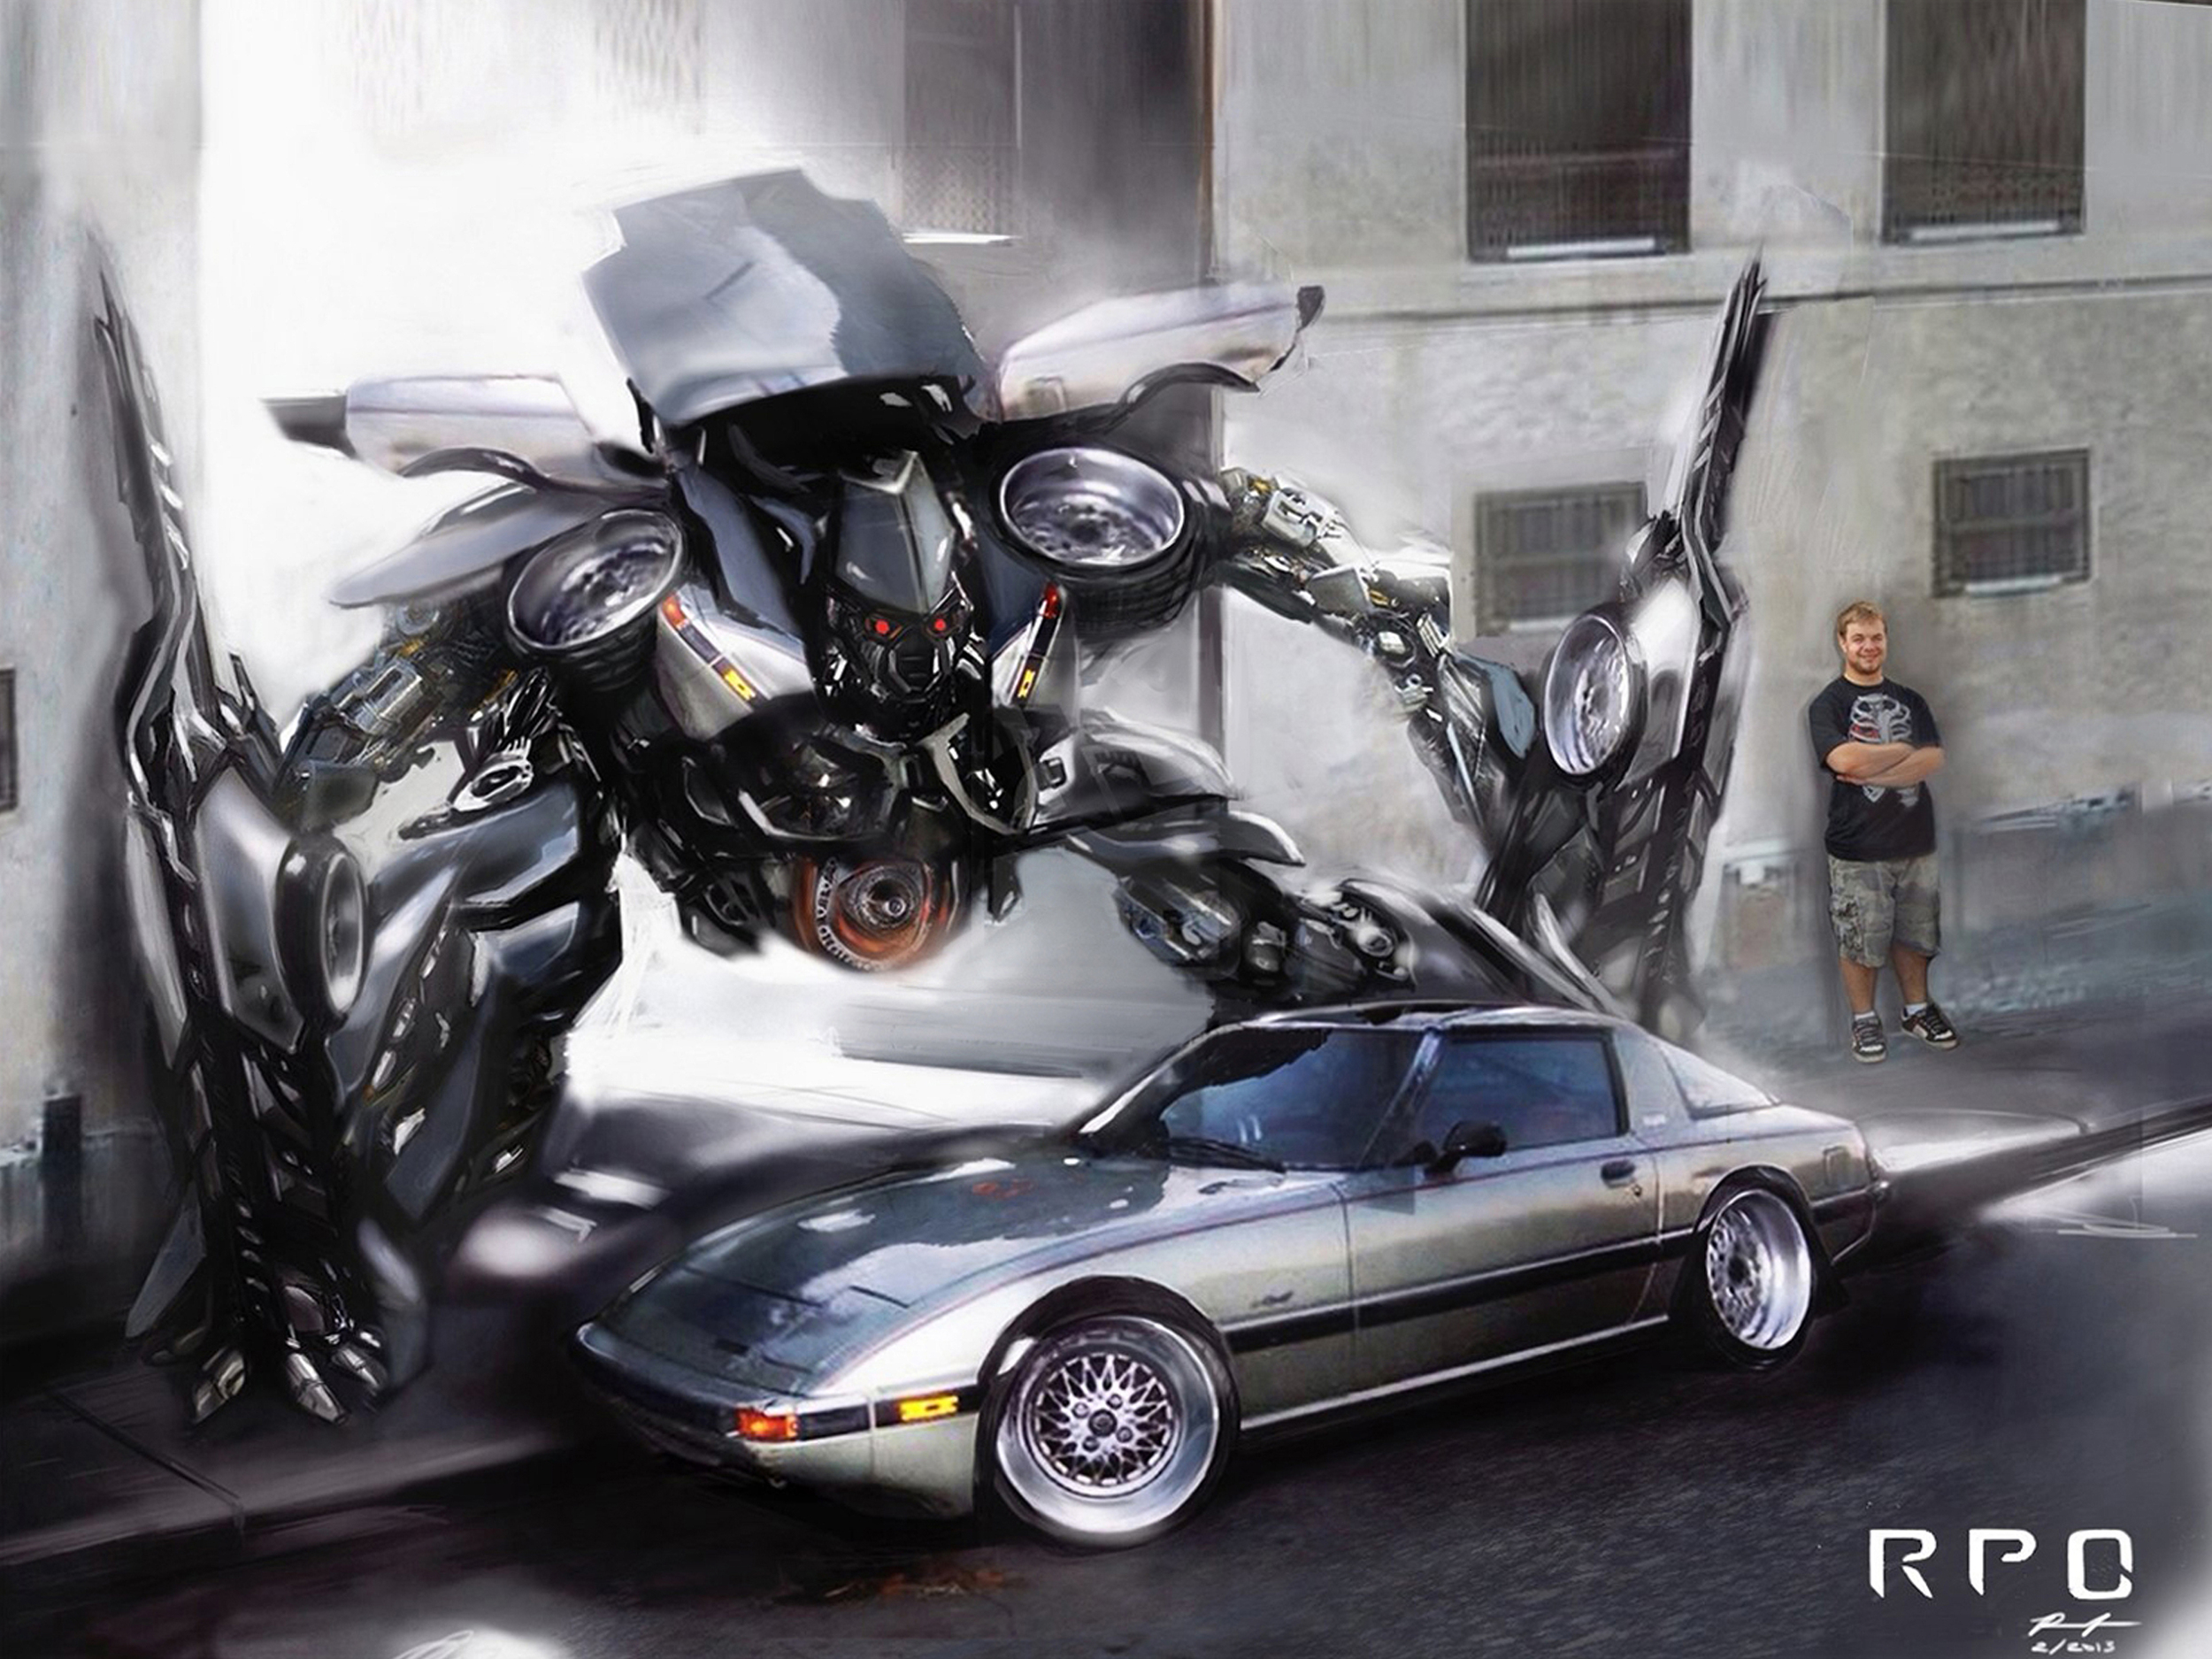 art_print_rx7_fb_by_rpodesign-d5uq38q.jpg